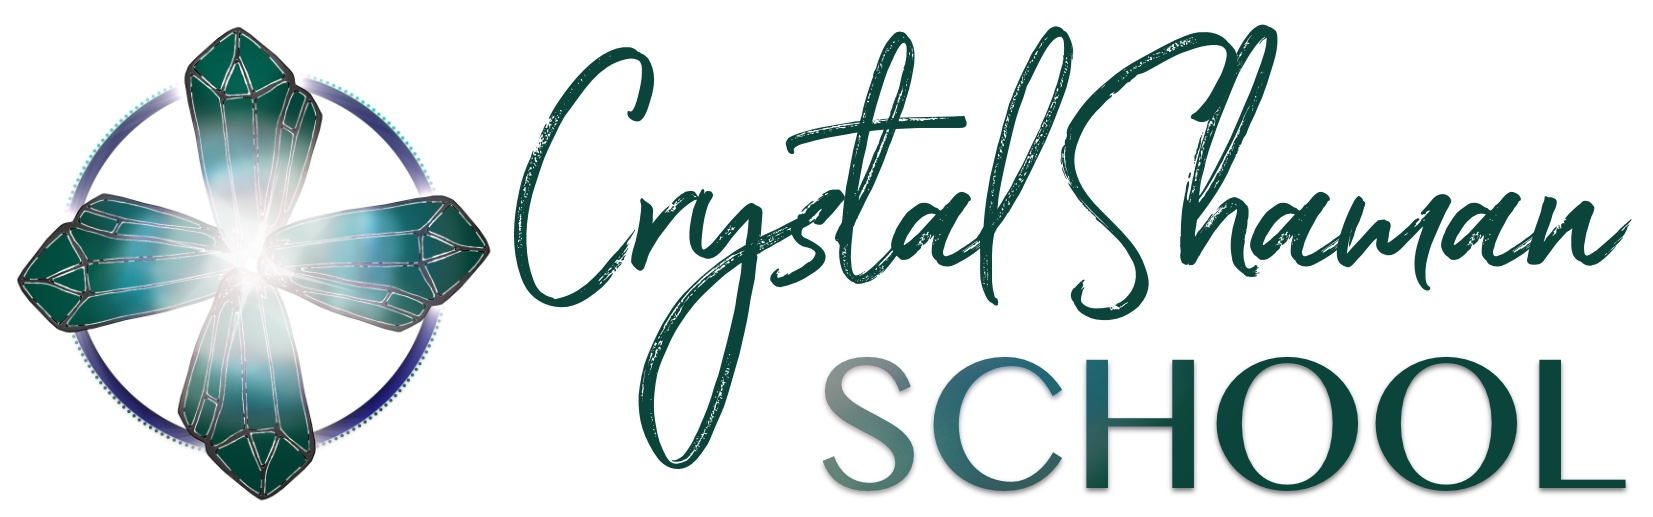 Crystal Shaman School